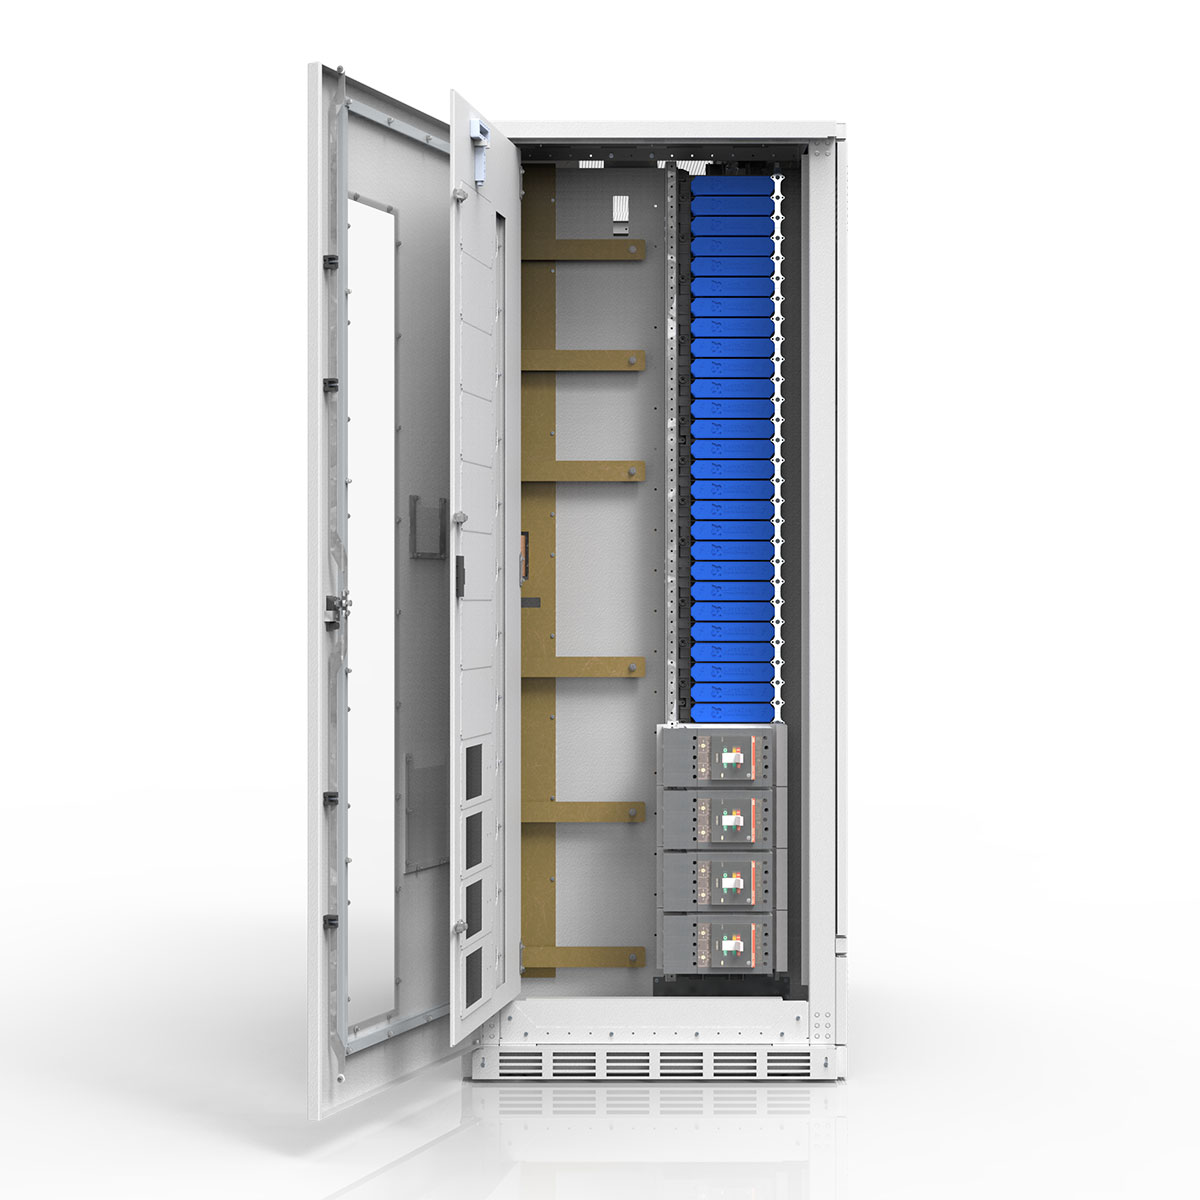 Power Distribution Unit (PDU) Distribution Section with SafePanel and Subfeed Circuit Breakers